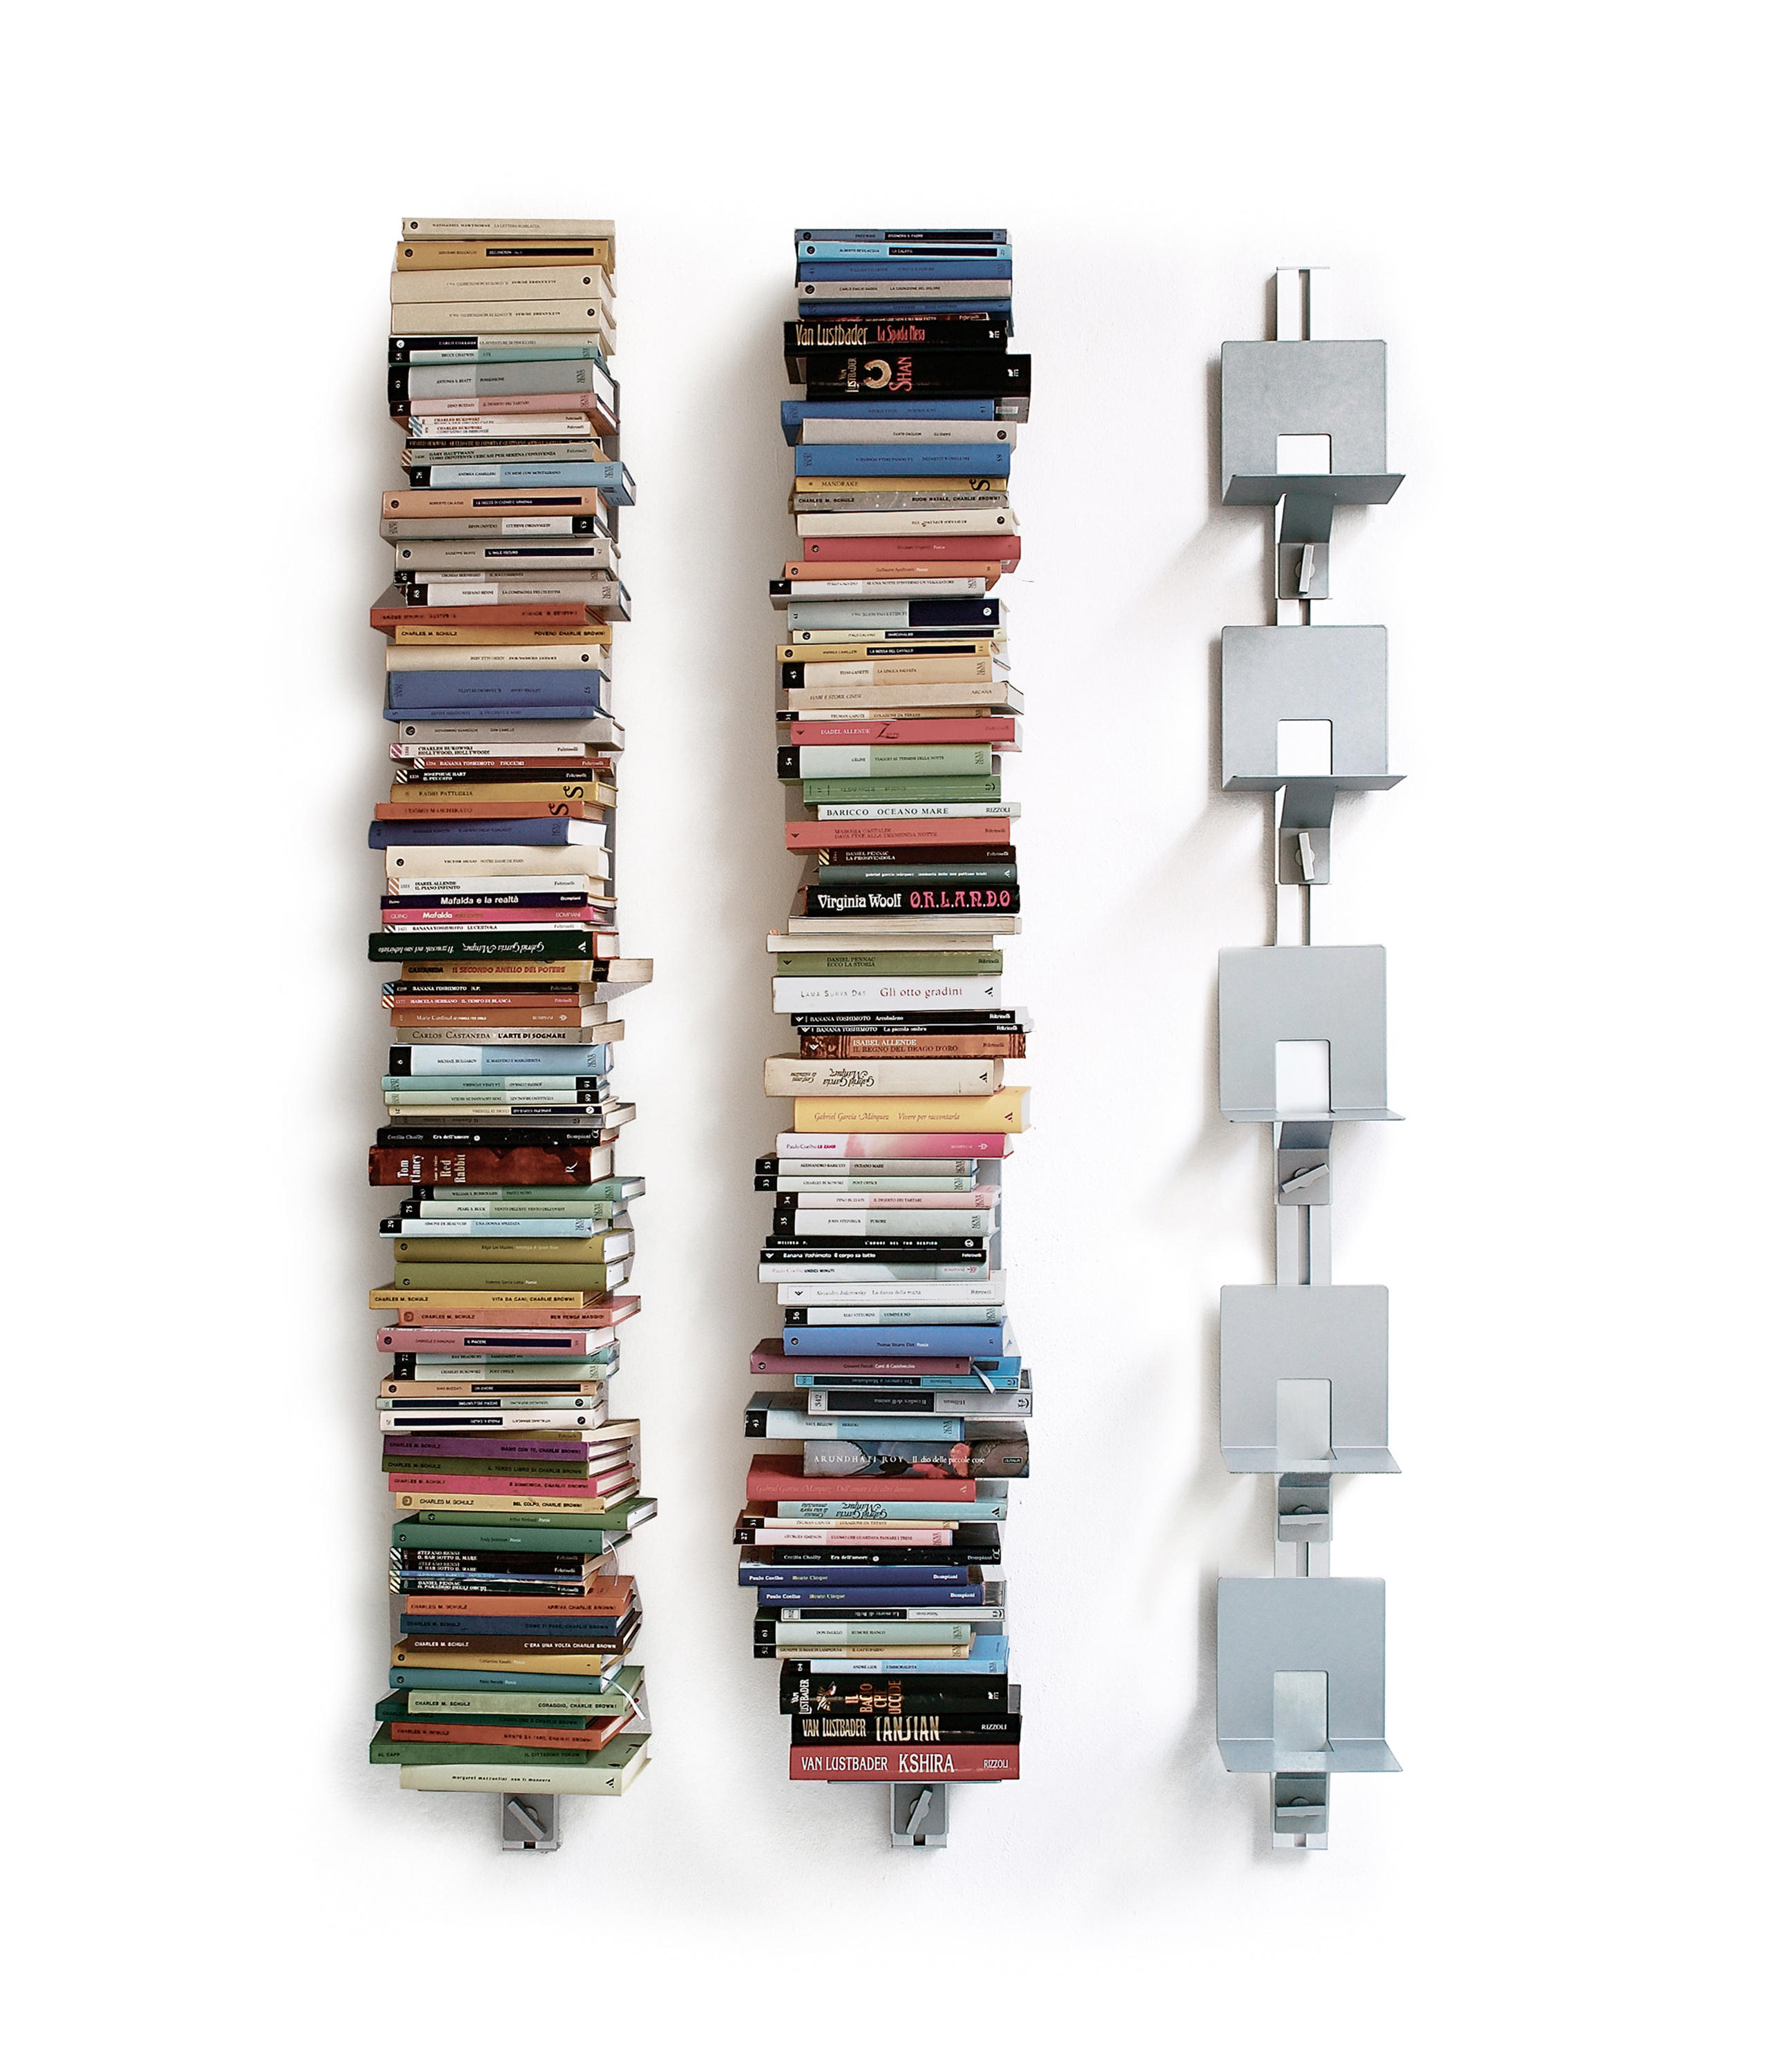 Beau ... Totem | At Wall Book Storage By Aico Design | Shelving ...